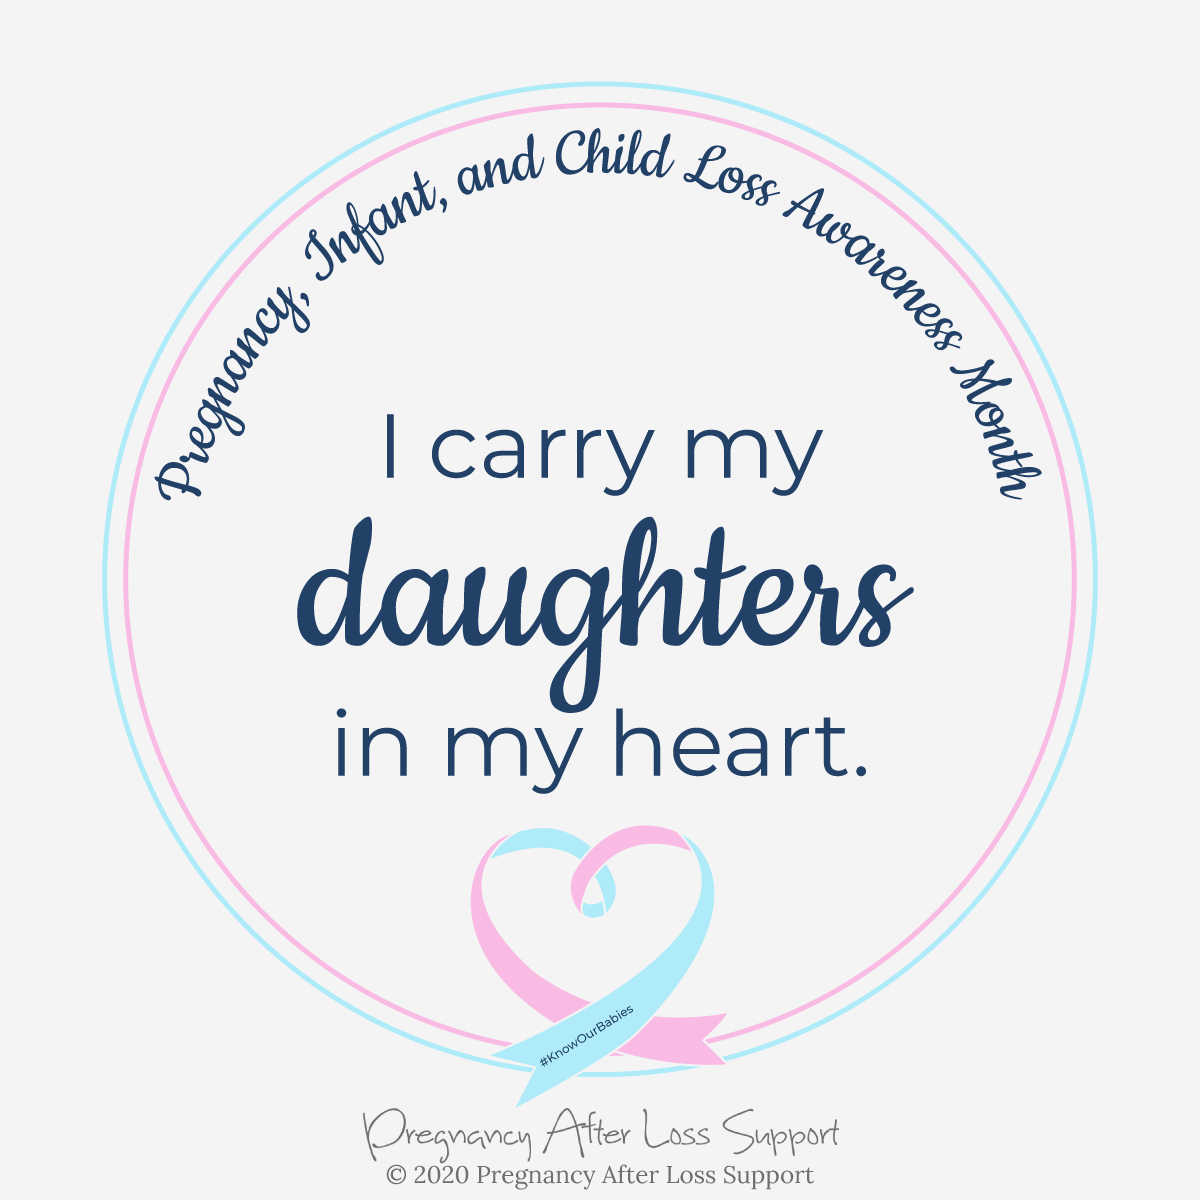 I carry my daughters in my heart - Pregnancy, Infant, and Child Loss Awareness Month